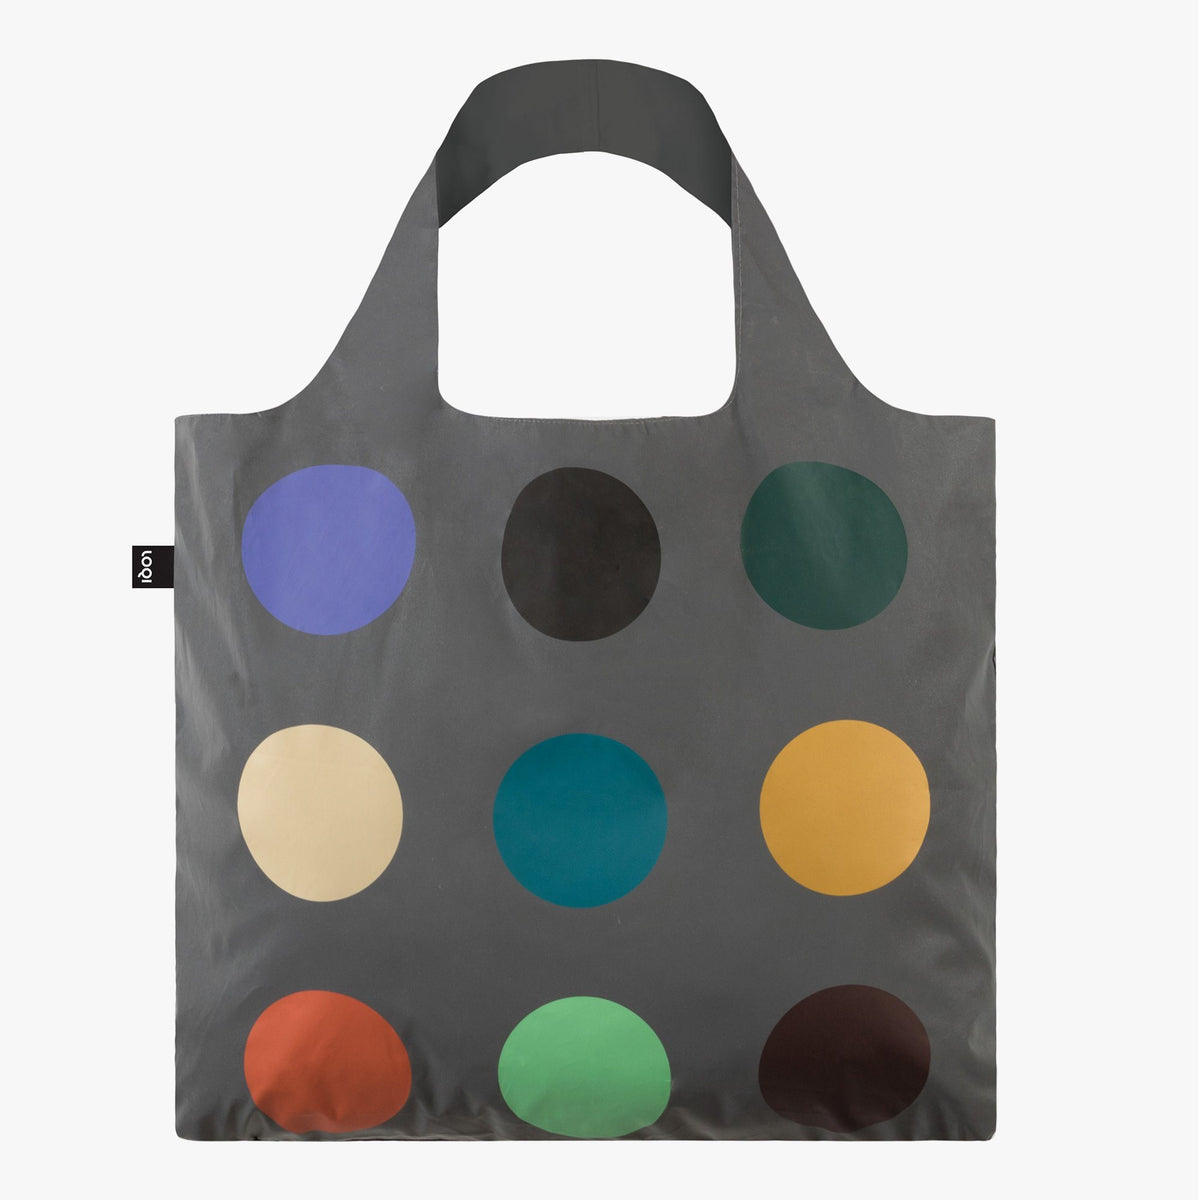 Reflective Dots Bag